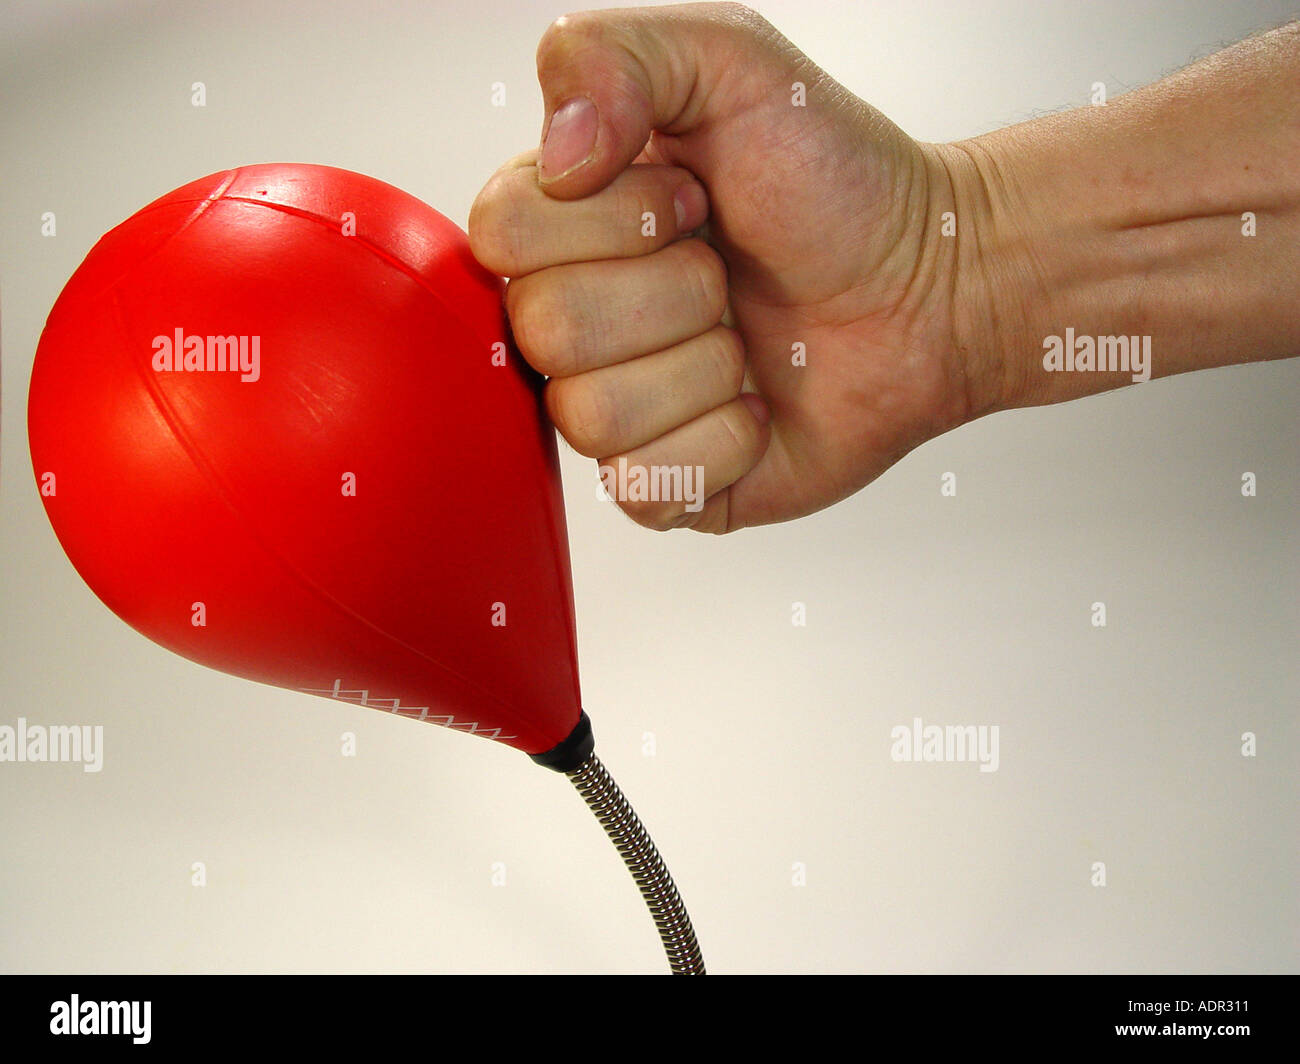 Punching ball as symbol for aggression dismantling force Mobbing etc Stock Photo